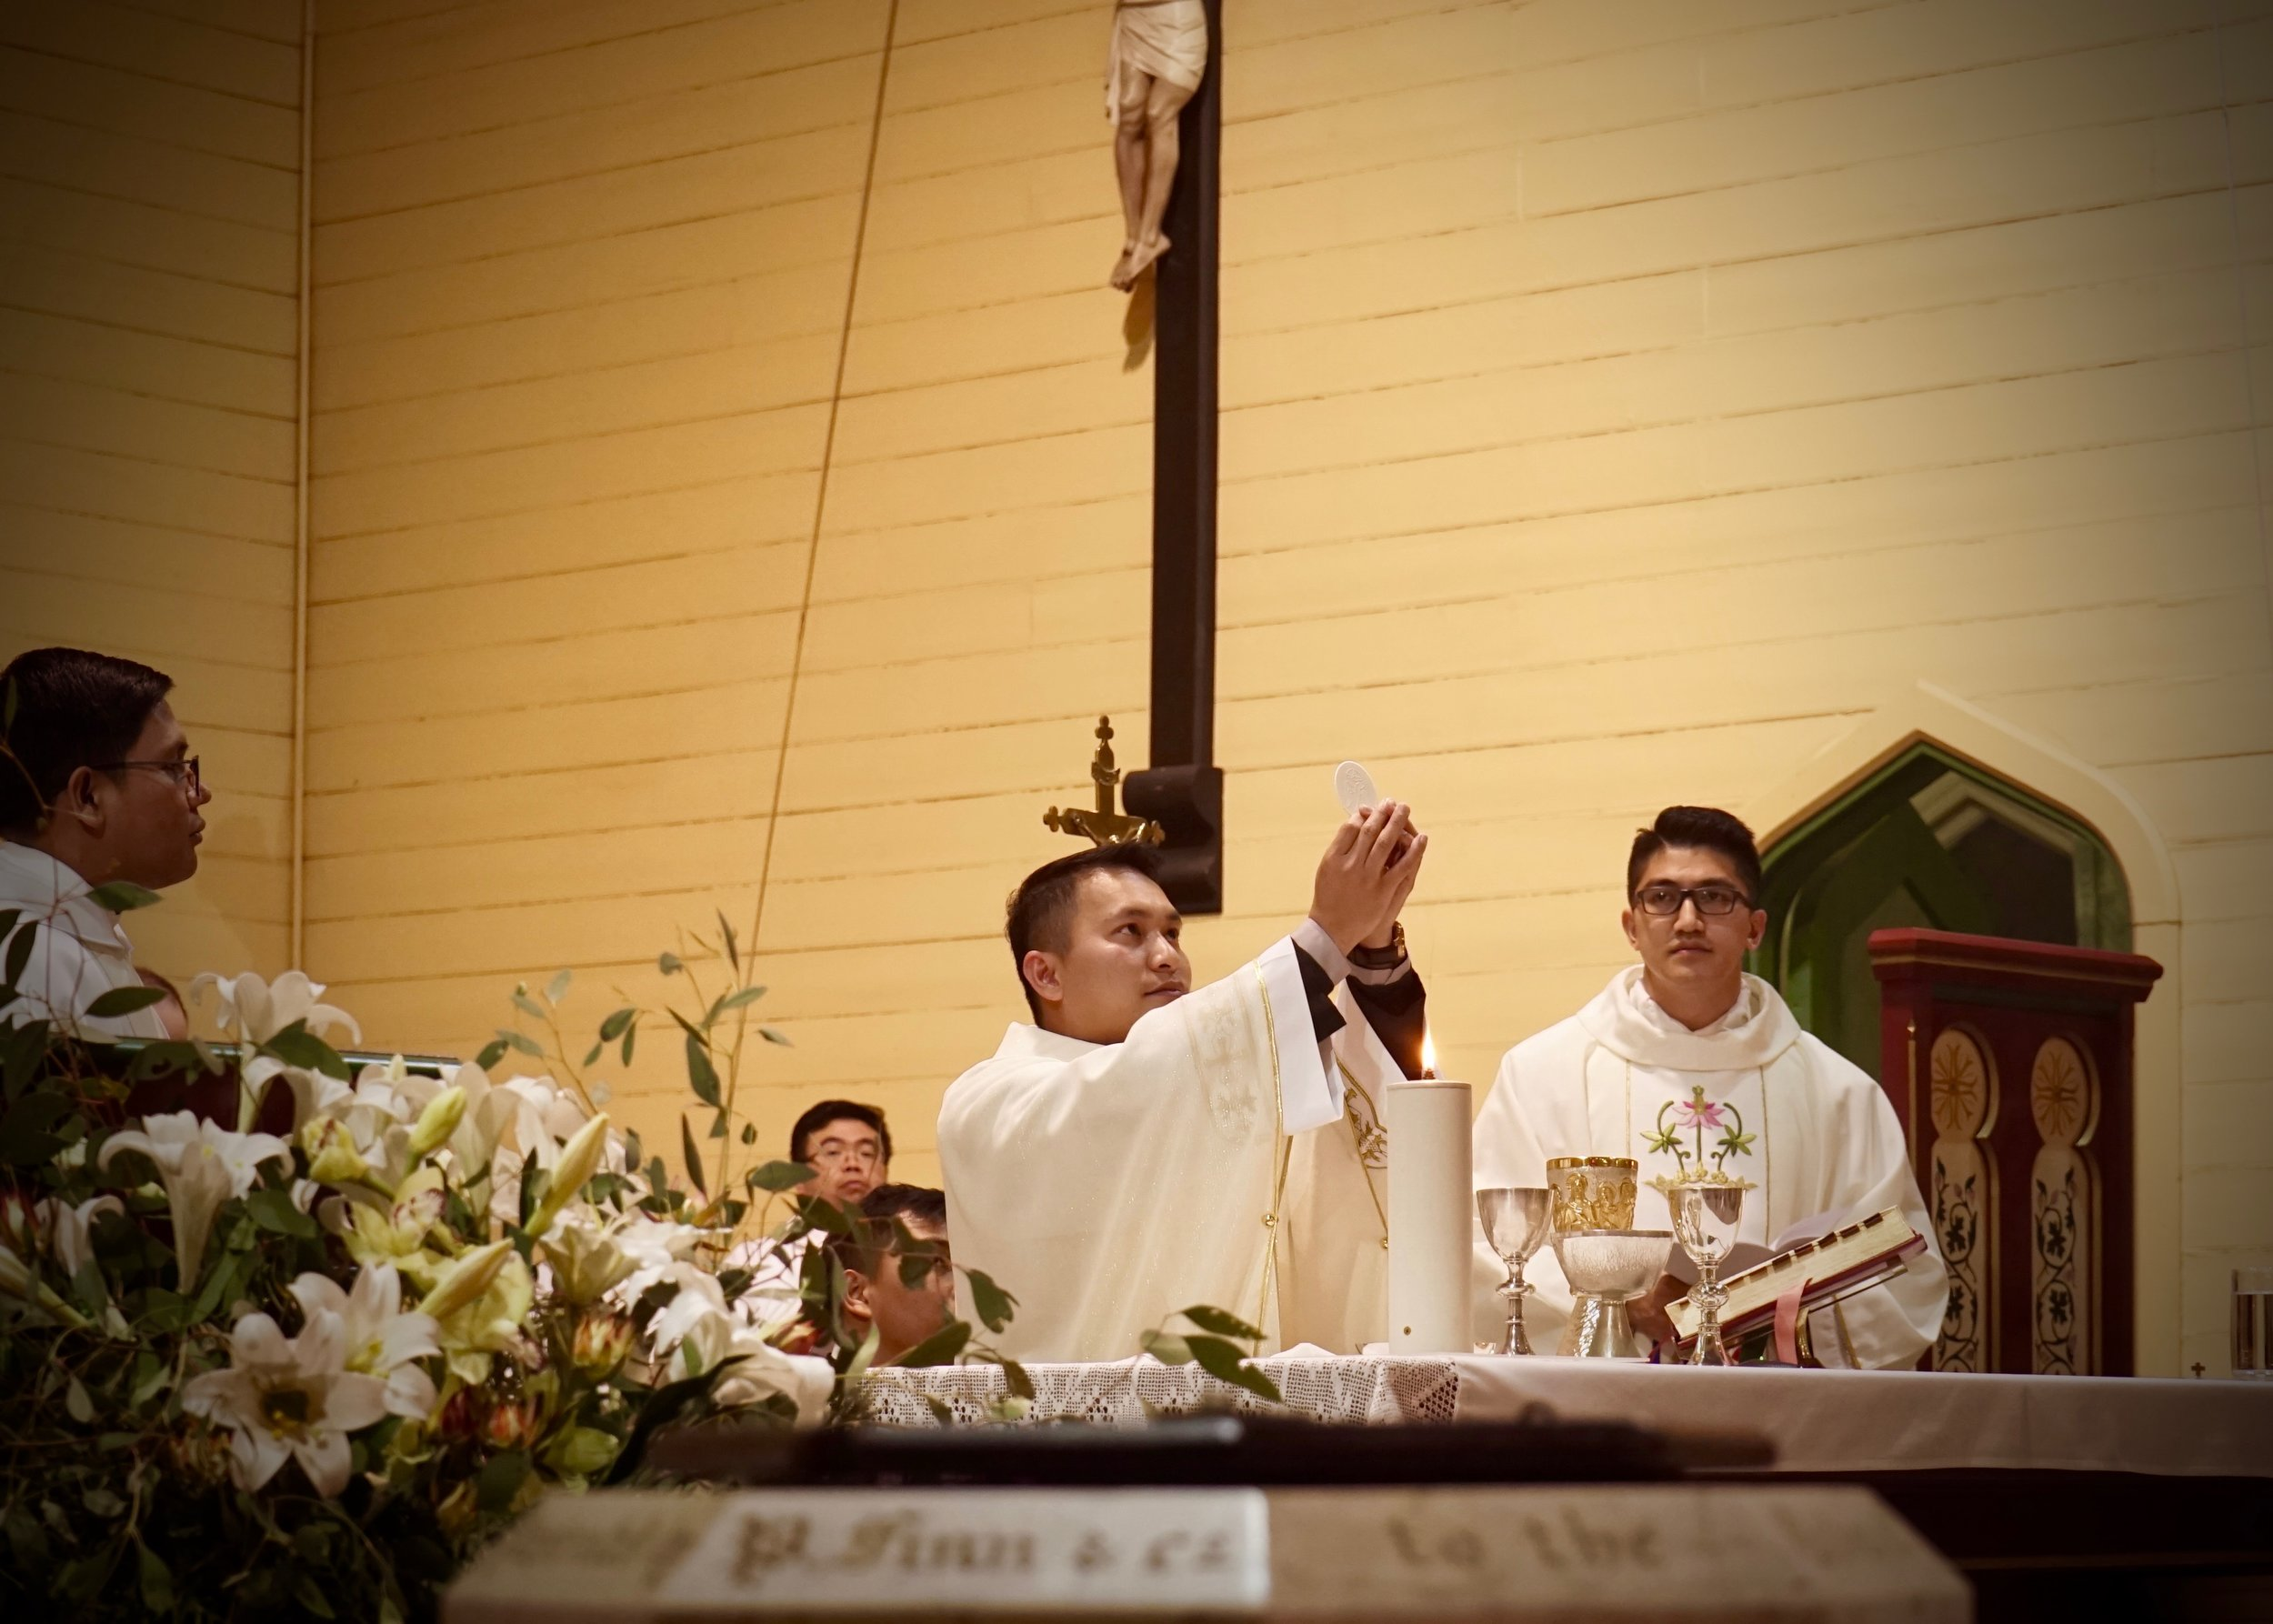 Fr Dean Bongat consecrates the bread into the Body of Christ during Mass for the first time.